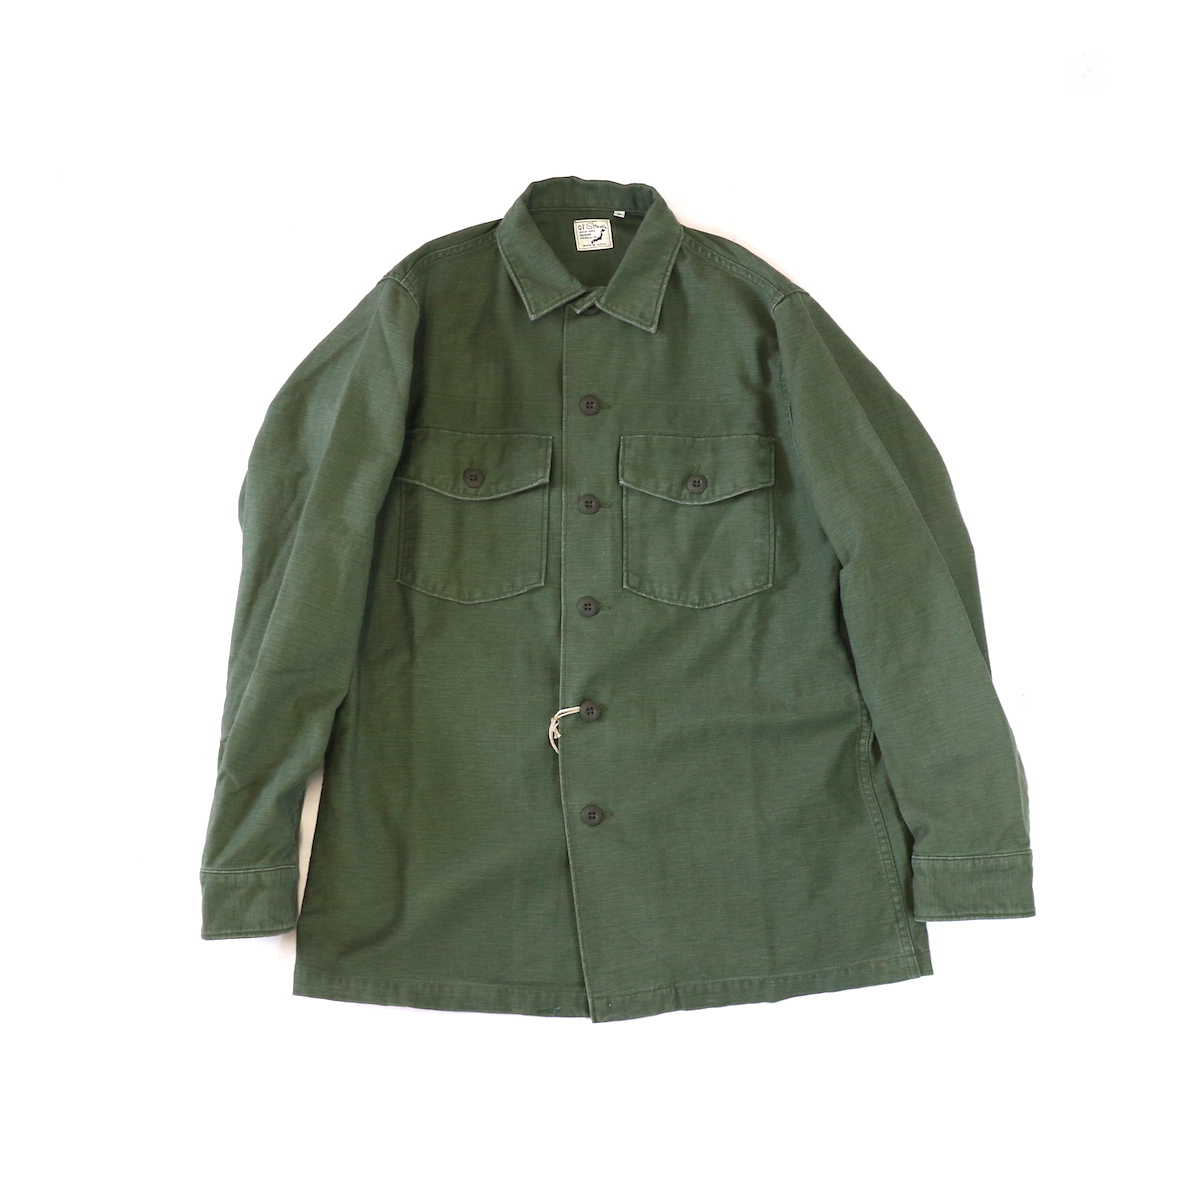 ORSLOW US ARMY SHIRT